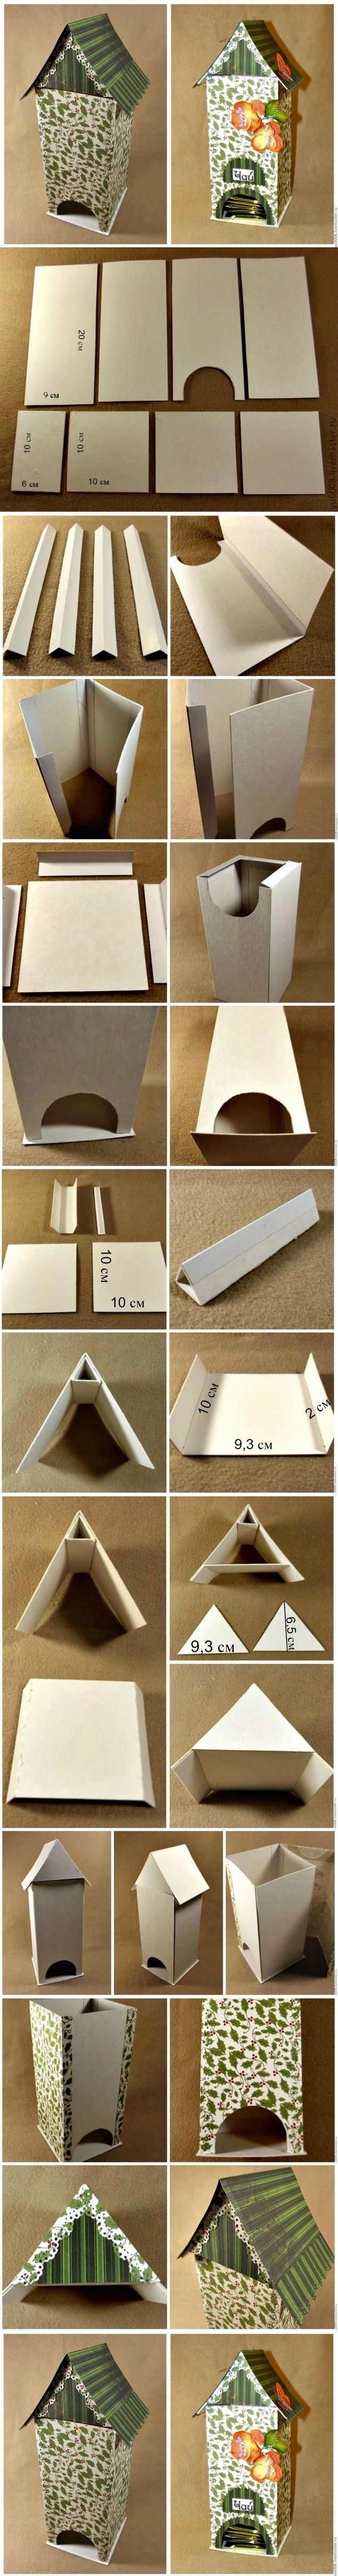 "<input+type=""hidden""+value=""""+data-frizzlyPostContainer=""""+data-frizzlyPostUrl=""http://www.usefuldiy.com/diy-cardboard-tea-bag-dispenser/""+data-frizzlyPostTitle=""DIY+Cardboard+Tea+Bag+Dispenser""+data-frizzlyHoverContainer=""""><p>>>>+Craft+Tutorials+More+Free+Instructions+Free+Tutorials+More+Craft+Tutorials</p>"